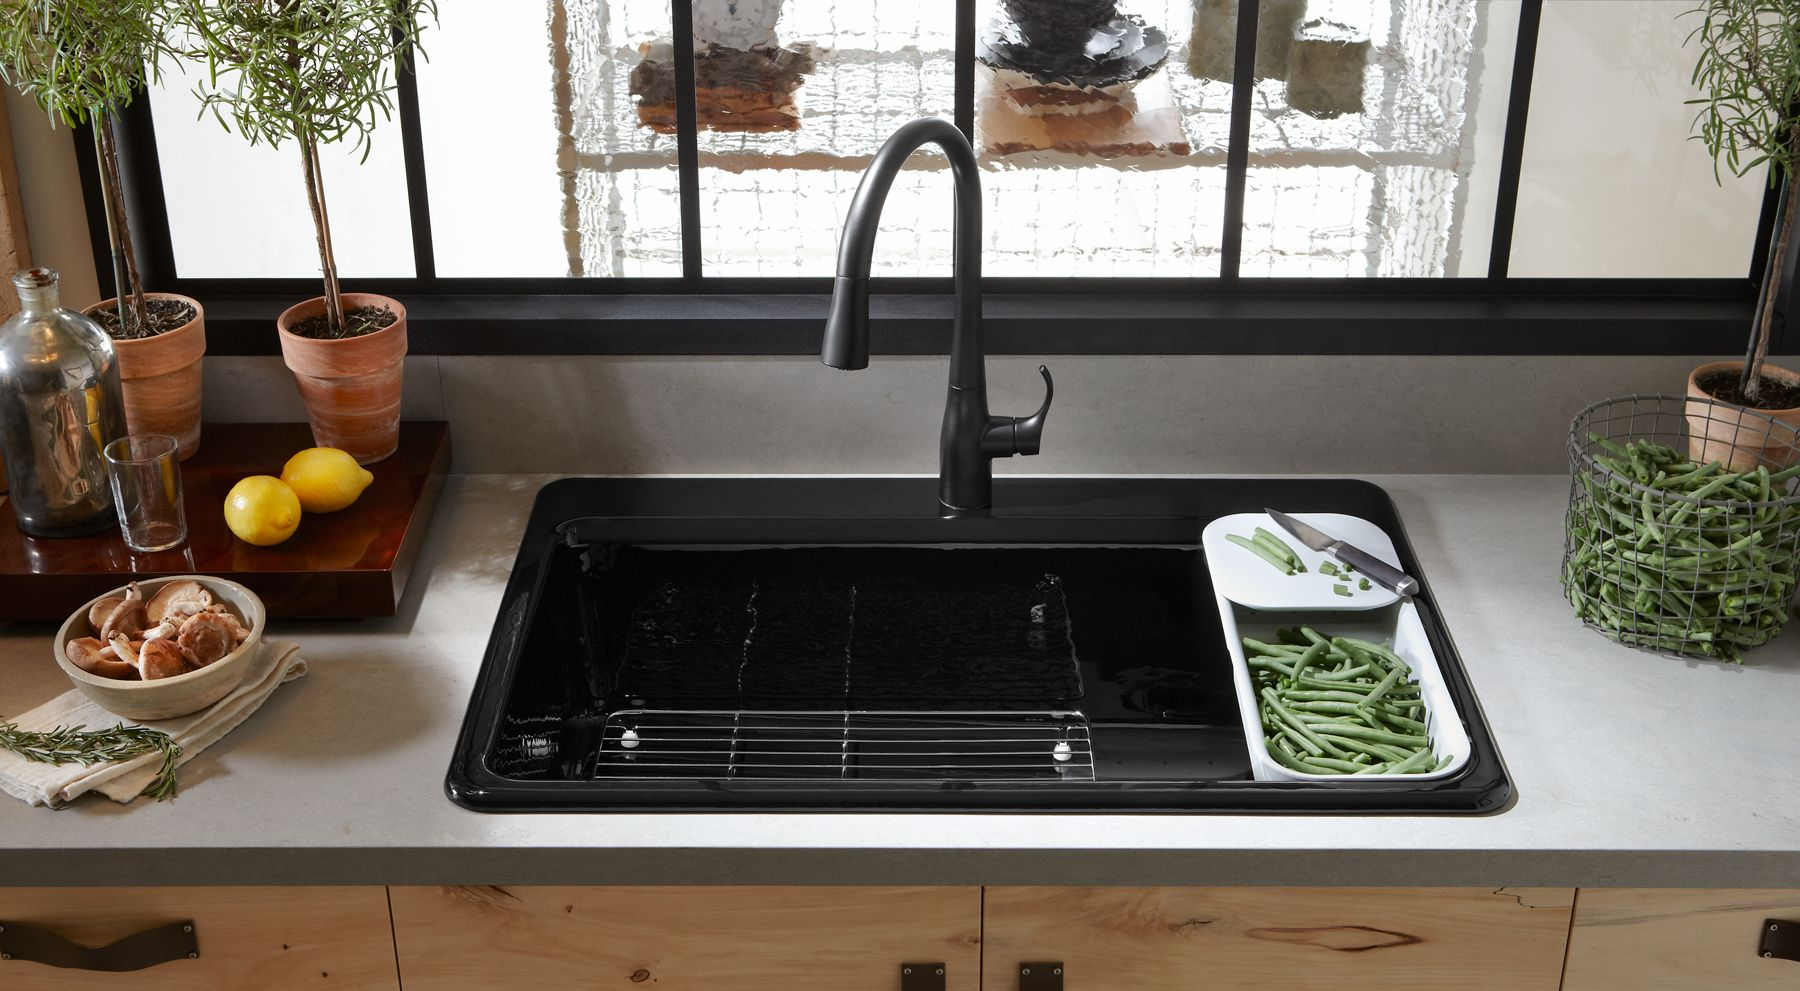 Kitchen Sink With Clean Dishes kitchen sink bowl configurations | buyer's guide | kohler